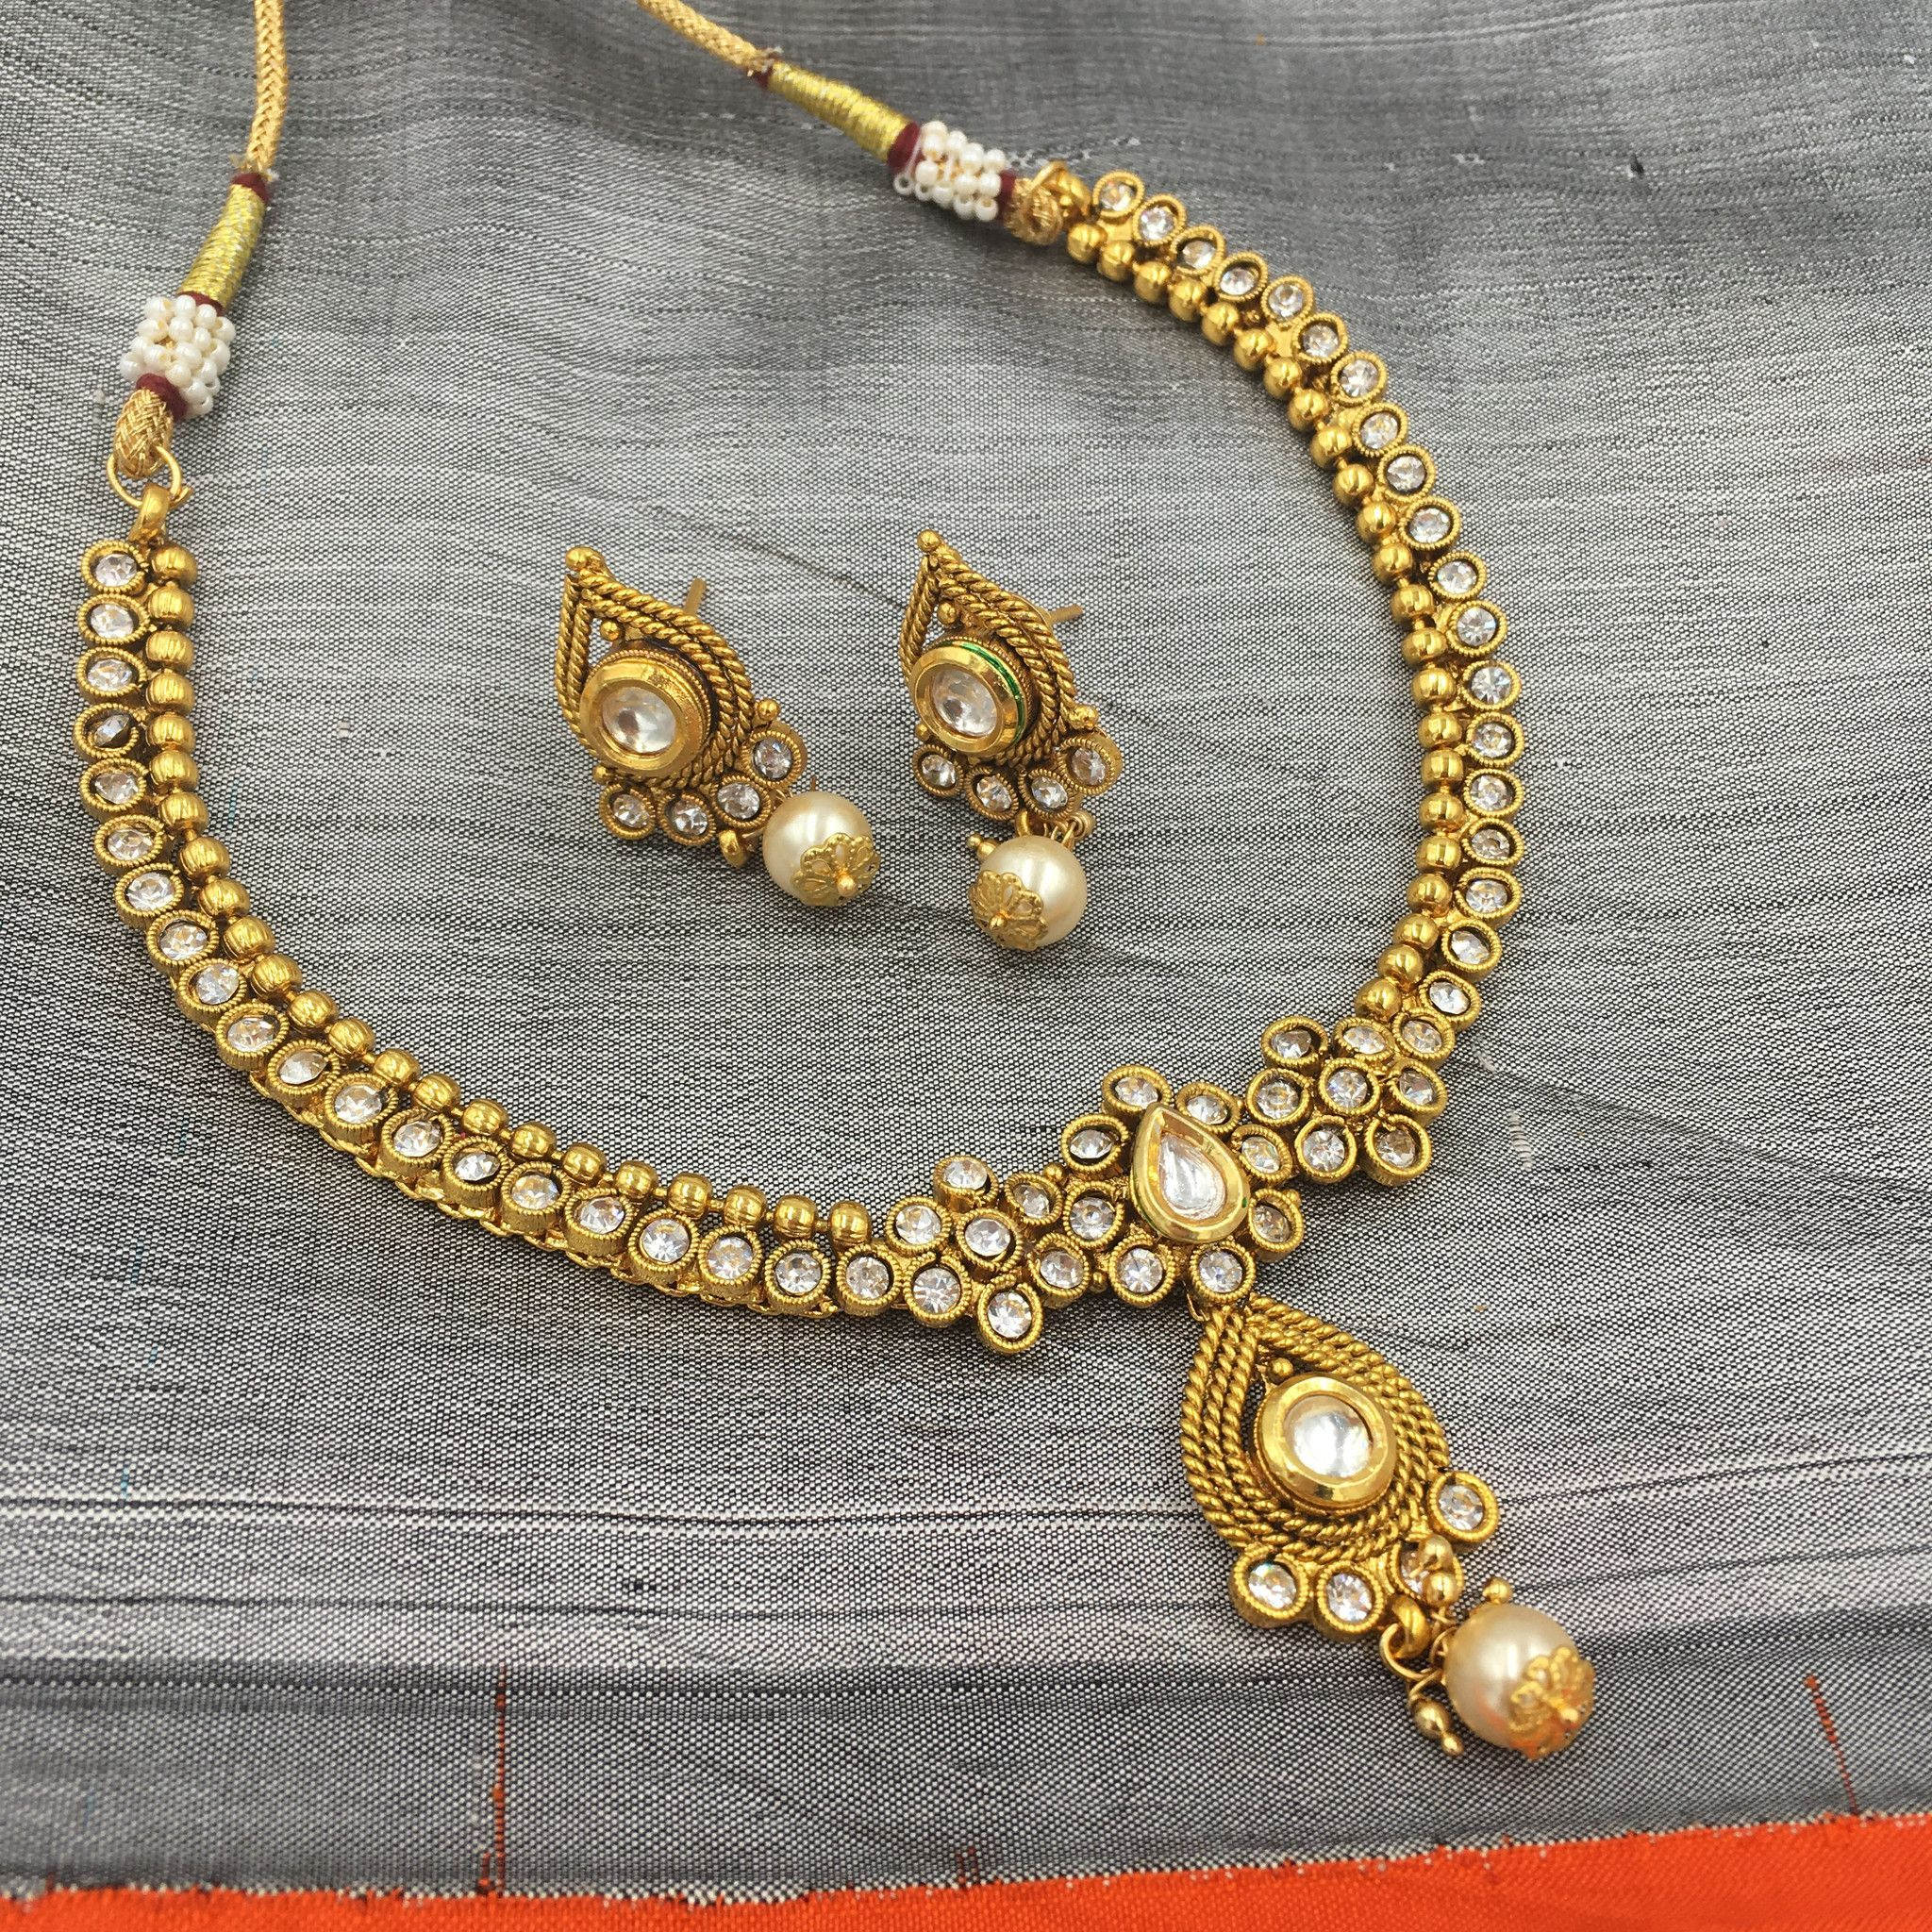 Fit necklace with white stones and pearl drop pendant a ray of